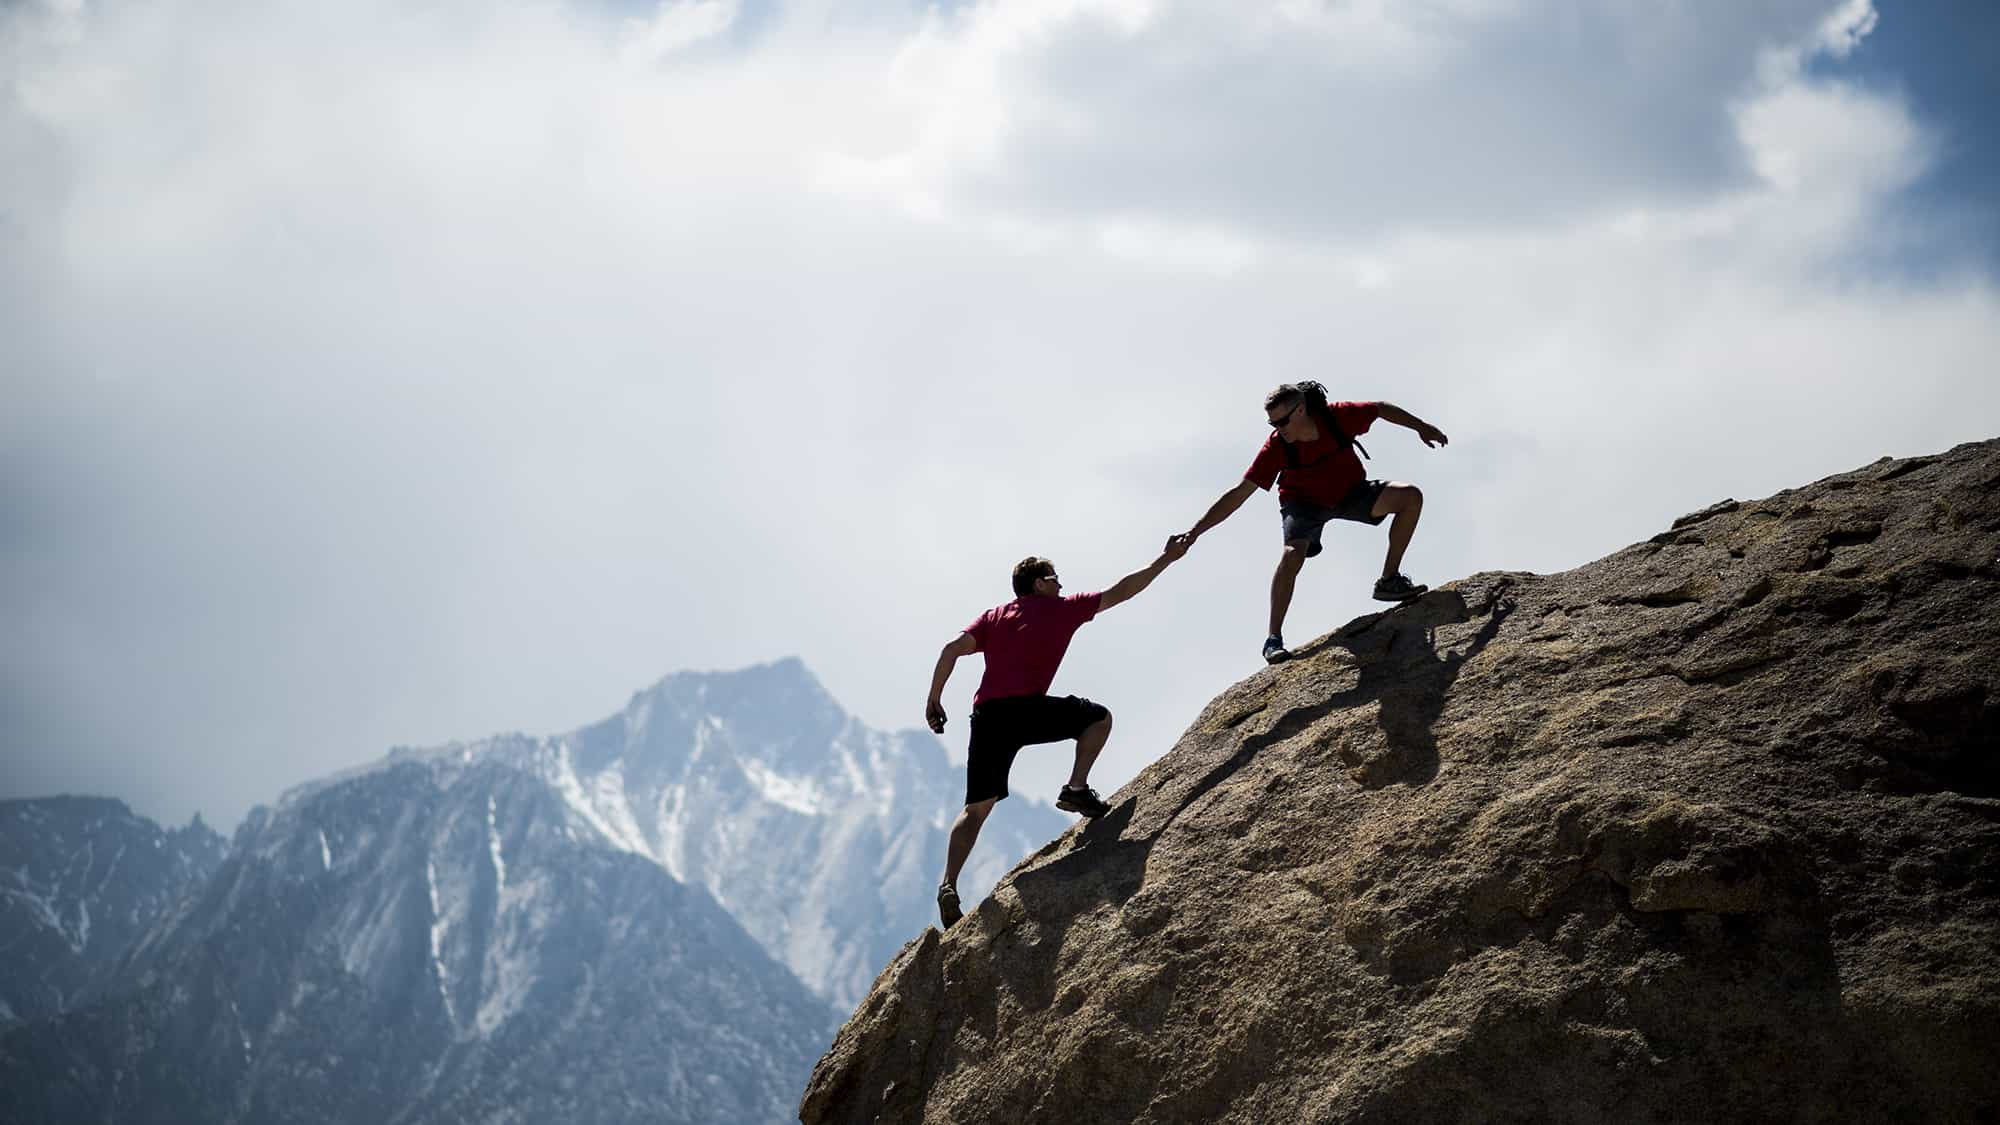 One climber helping another to the summit of a giant boulder